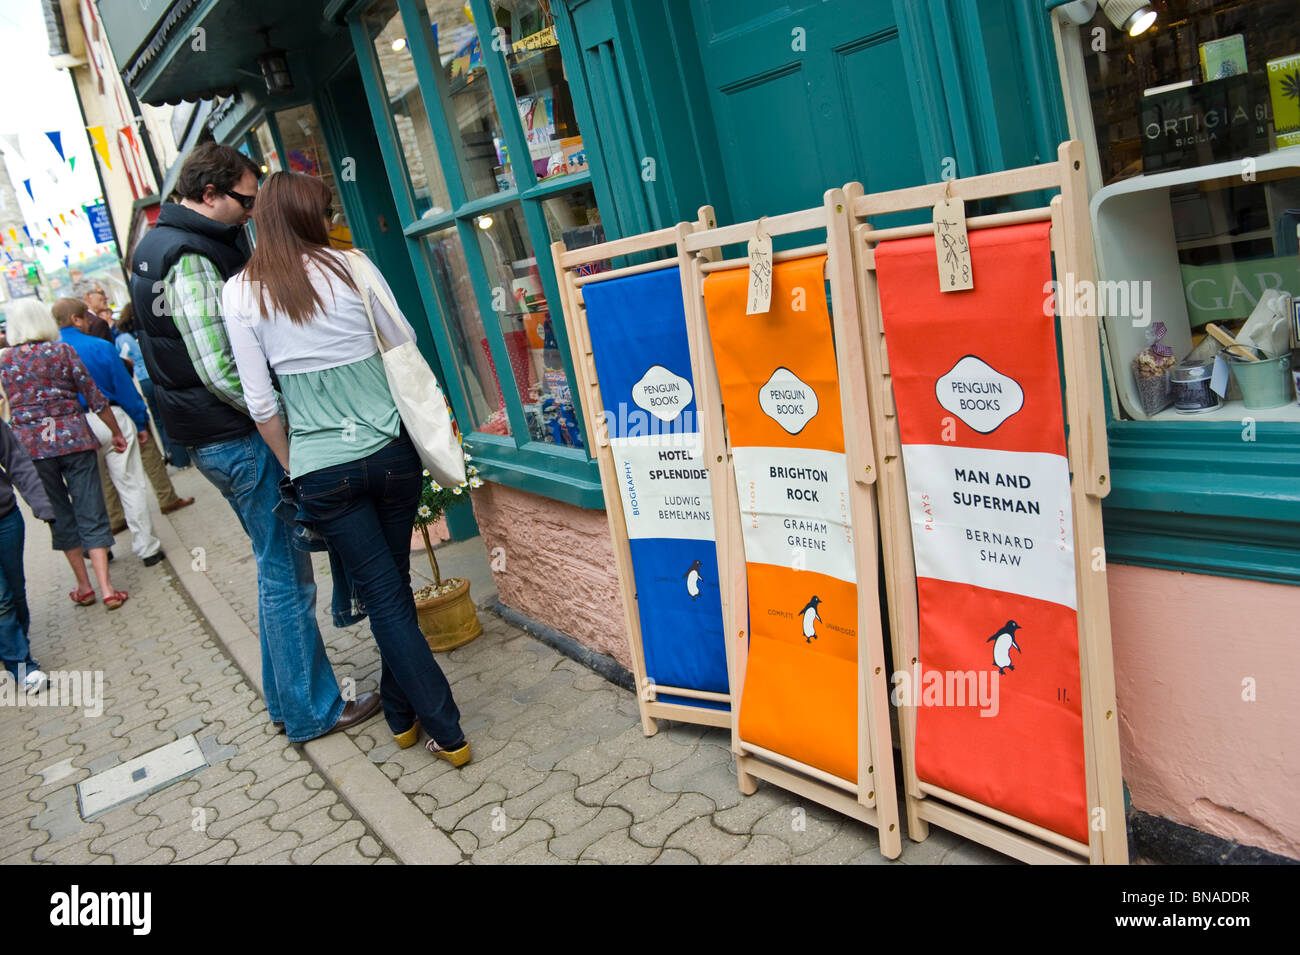 literary deckchairs branded penguin books for sale outside shop with